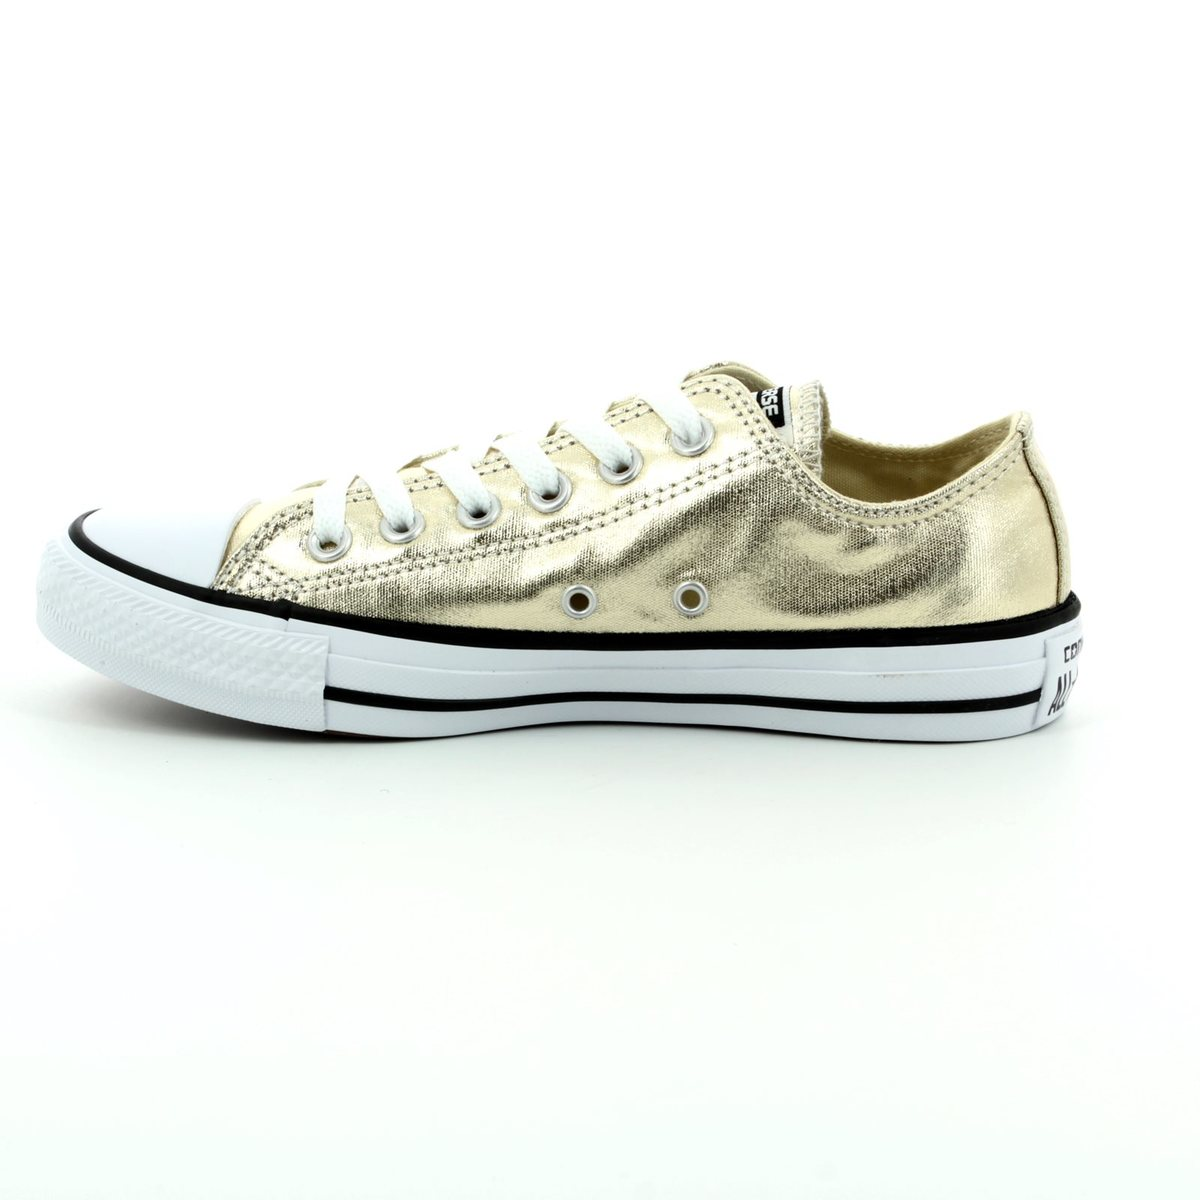 4917fb84a8a9 Converse Trainers - Gold - 153181C Chuck Taylor All Star OX Light Gold